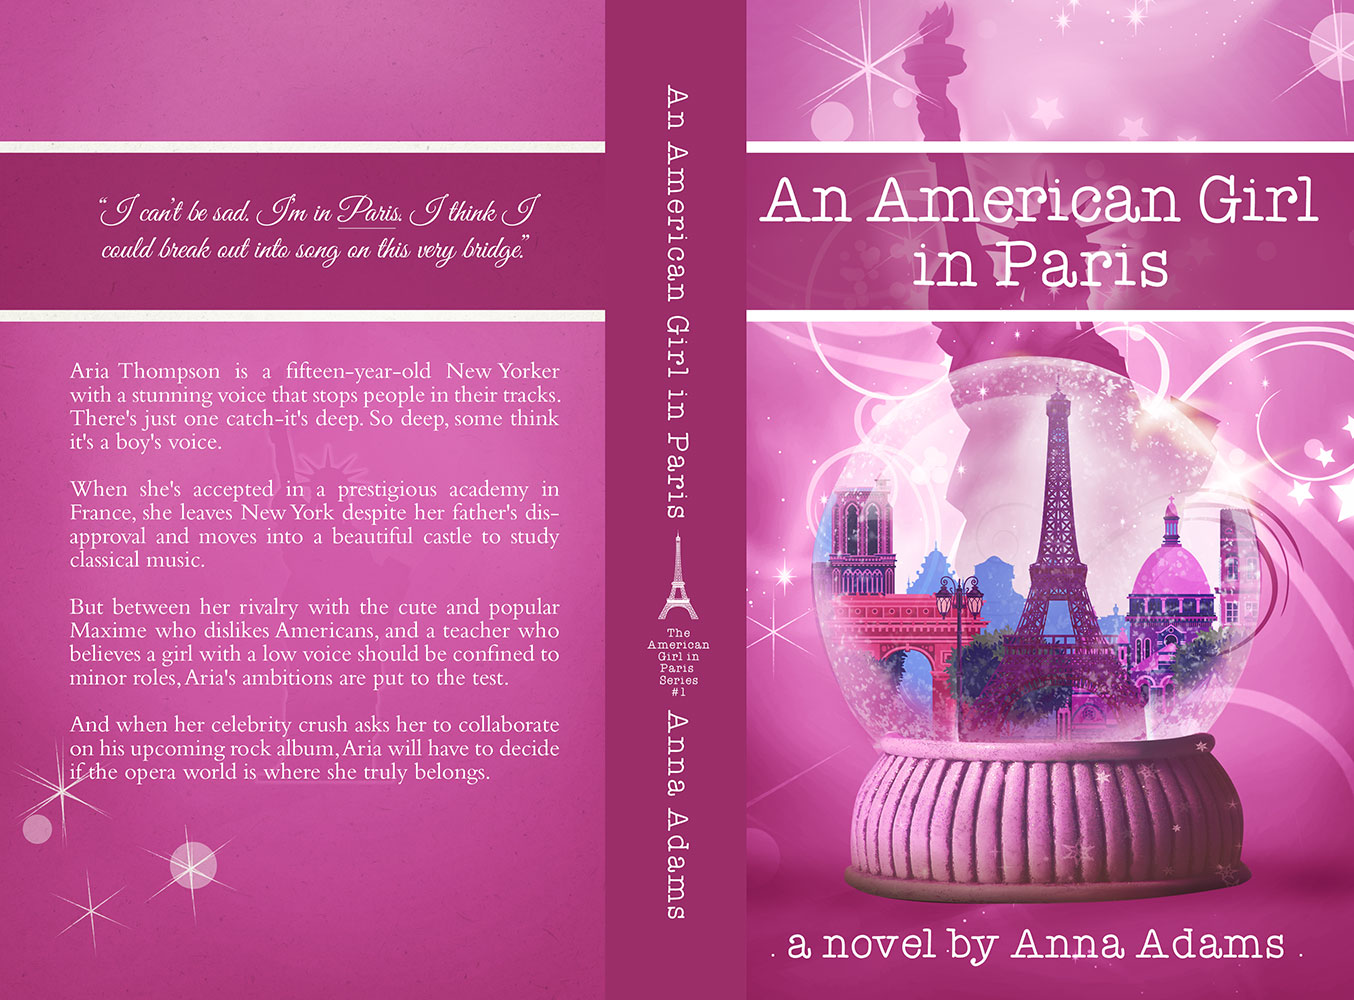 An American Girl in Paris by Anna Adams